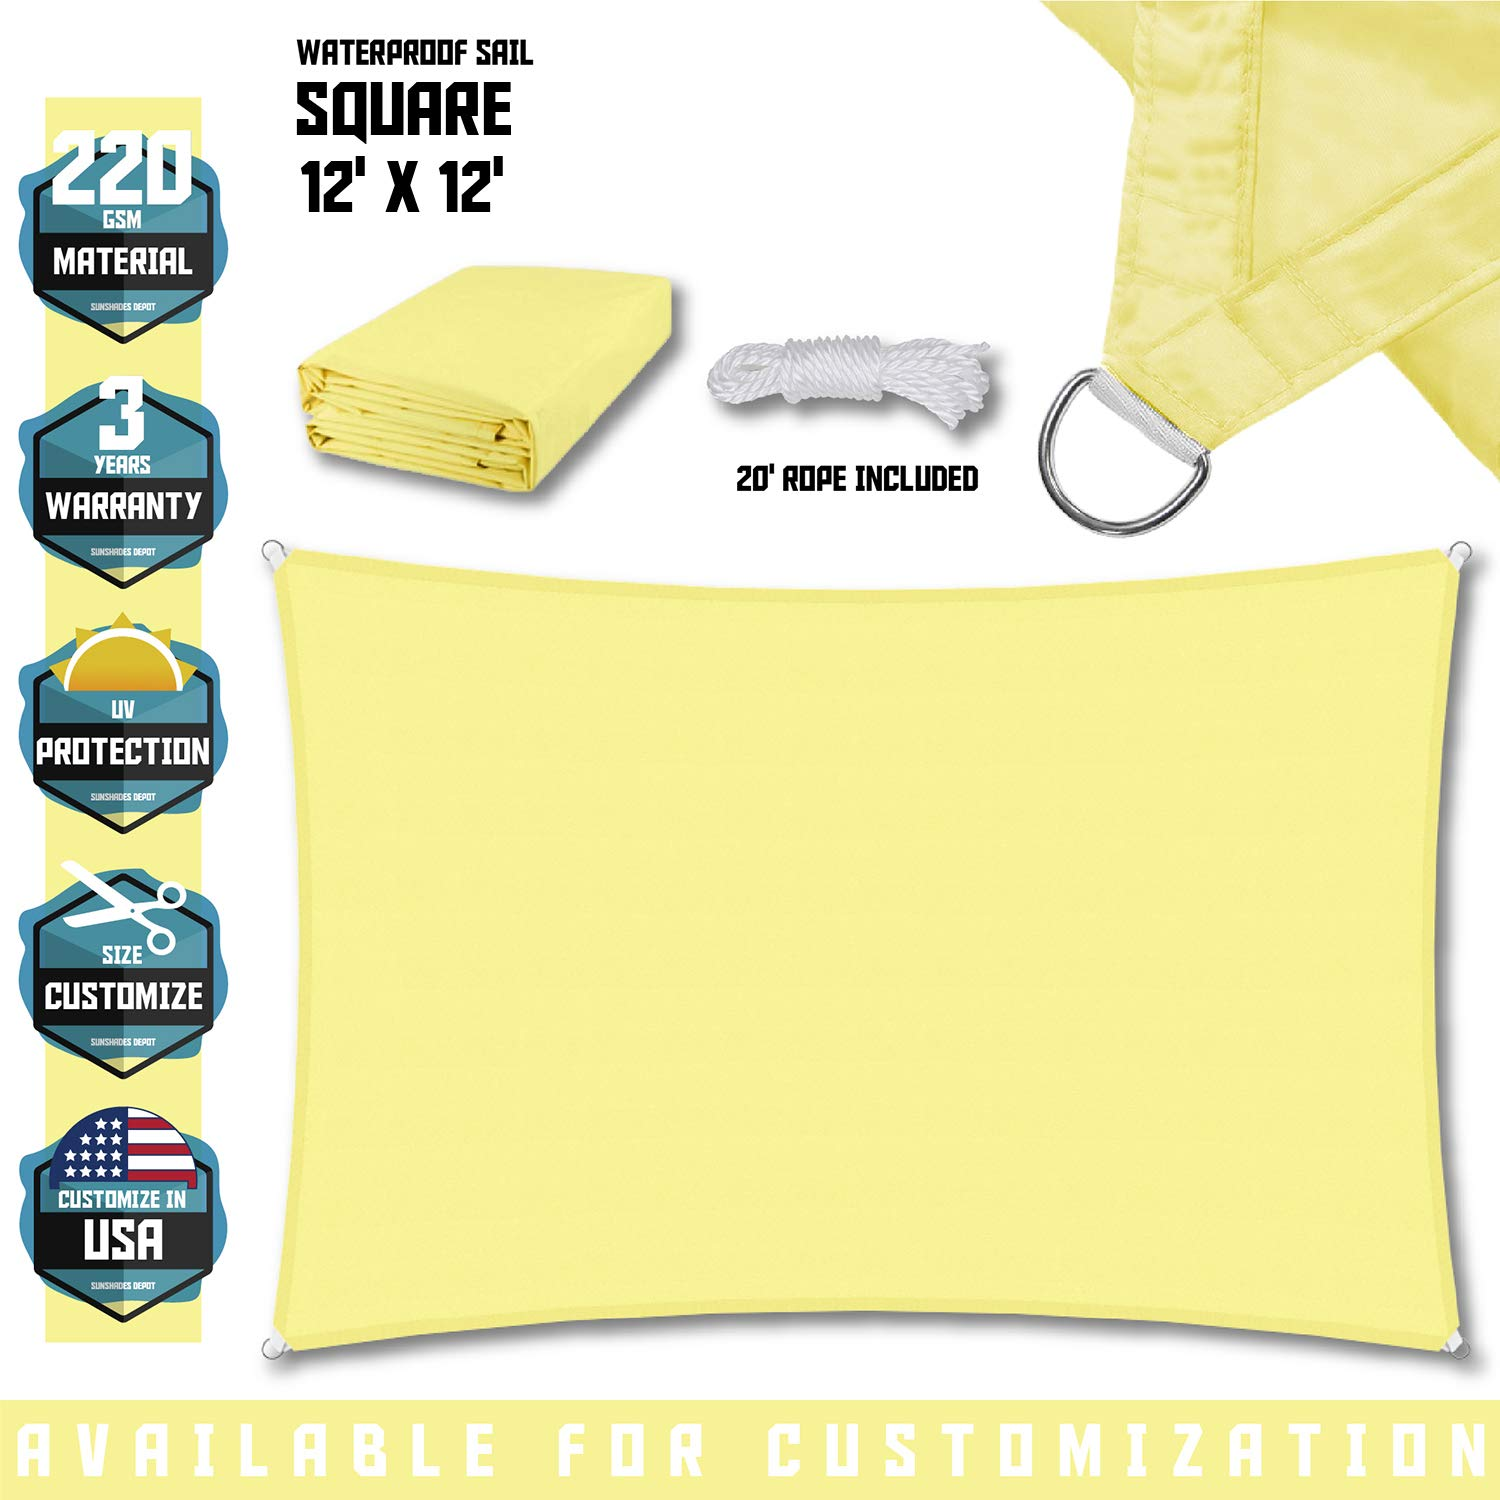 TANG Sunshades Depot 12 x12 Square Waterproof Knitted Shade Sail Curved Edge Canary Yellow 220 GSM UV Block Shade Fabric Pergola Carport Canopy Replacement Awning Customize Available